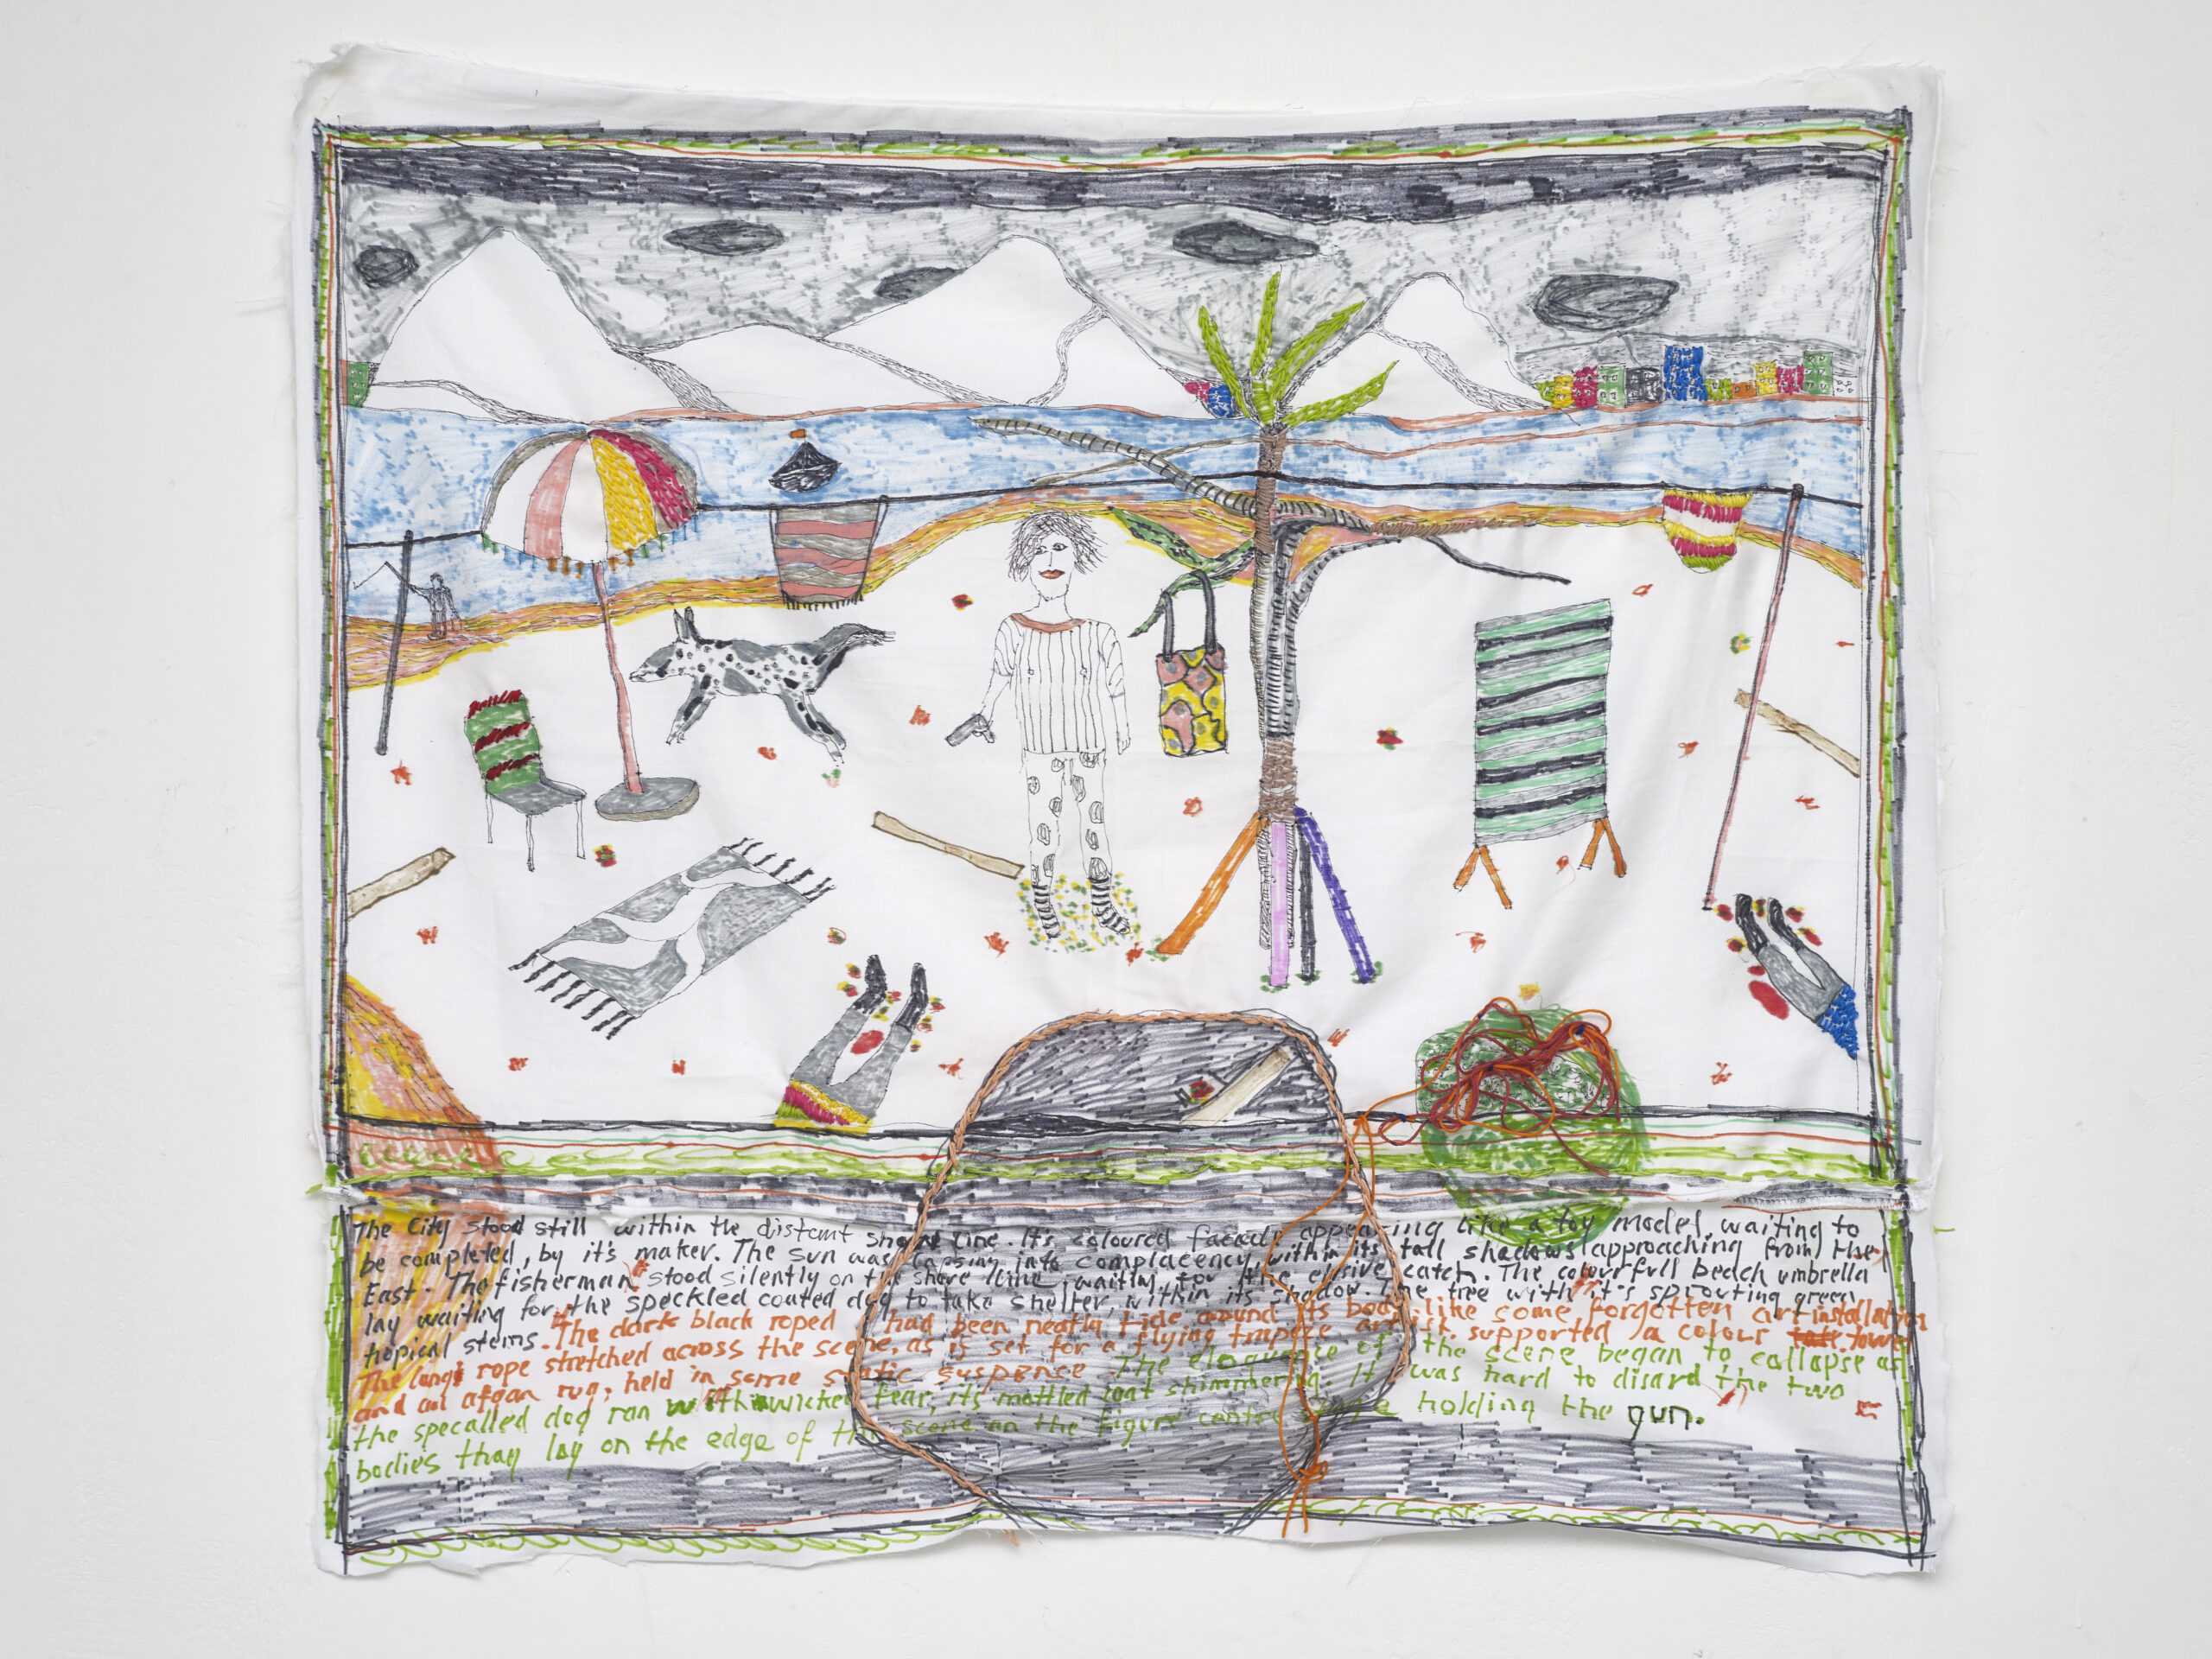 Brian Dawn Chalkley: Waiting for the elusive catch (2020) Pencil, felt tip and thread on cotton pillow case, 75 cm x 65 cm.